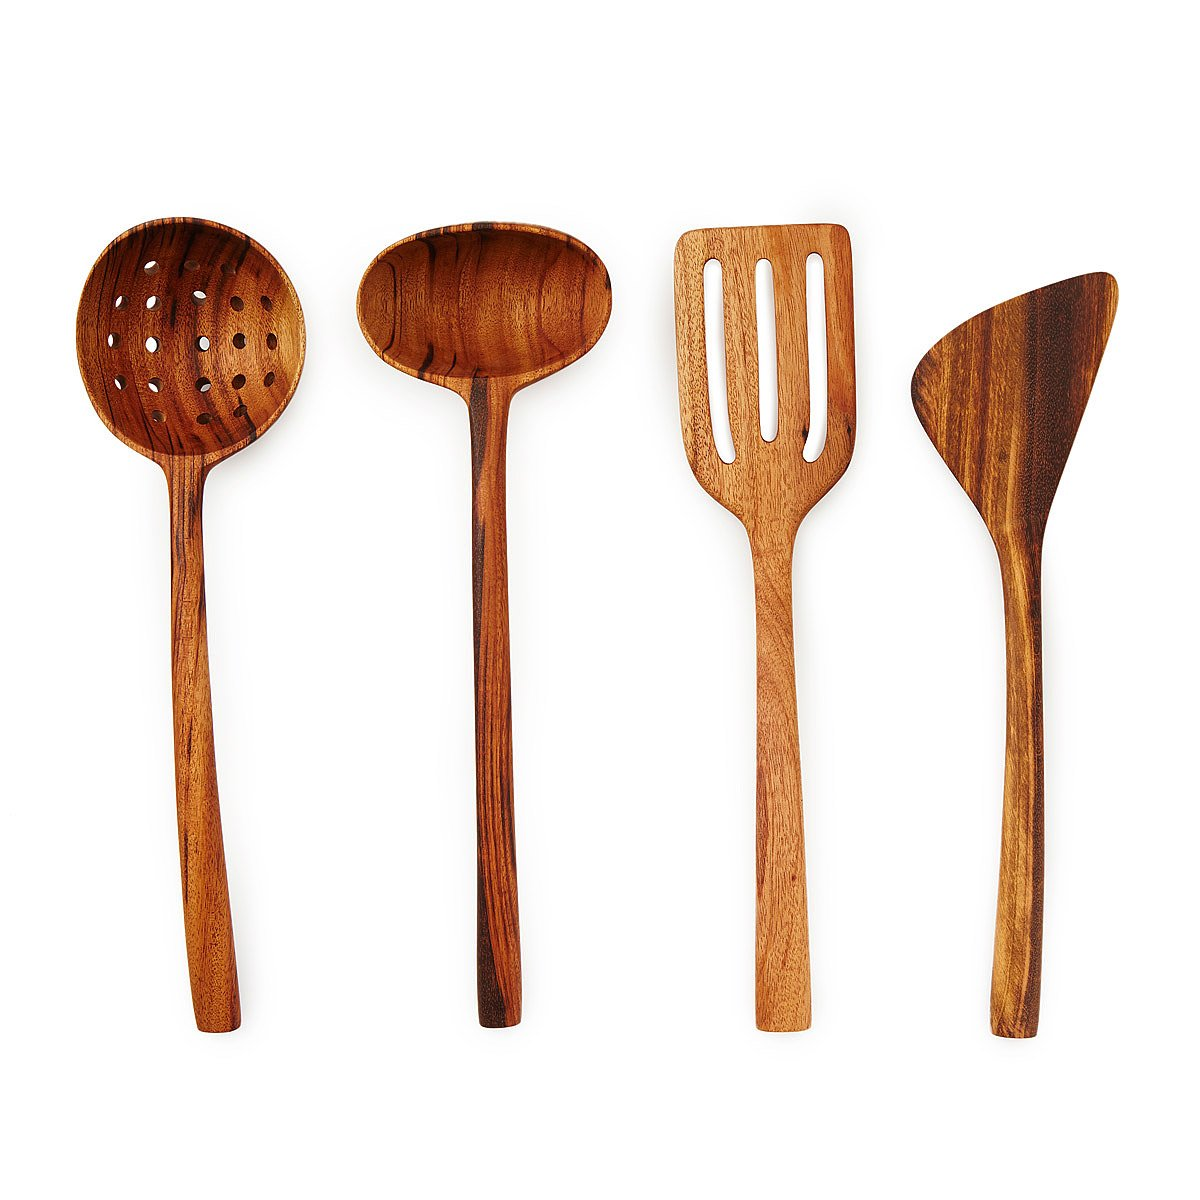 wooden kitchen utensils | wood tools for cooking | uncommongoods